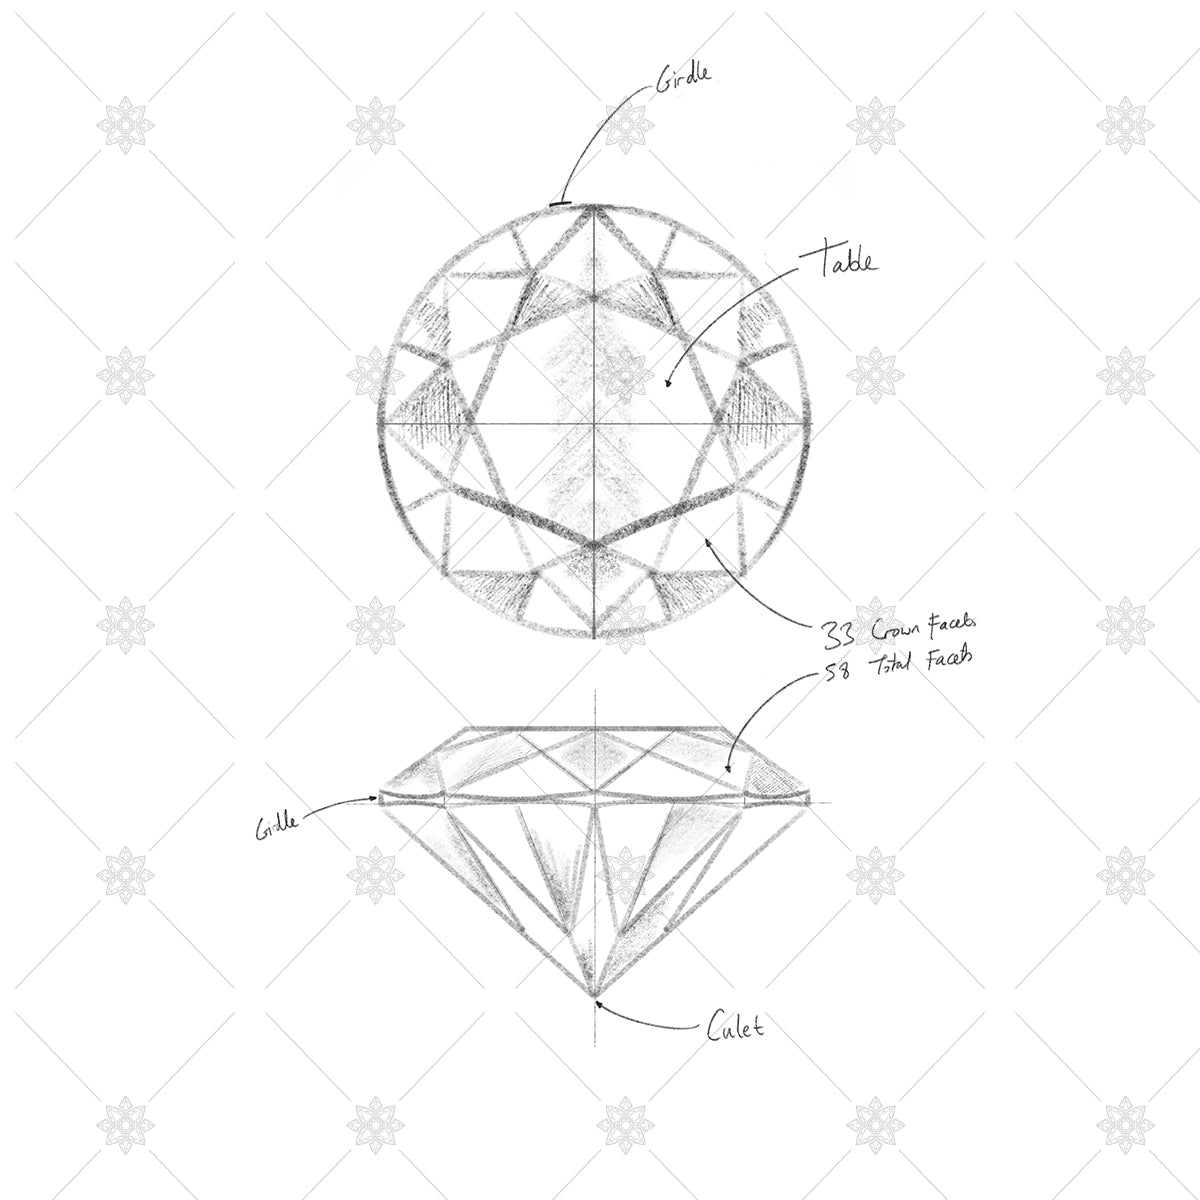 Round brilliant cut diamond sketch with annotations